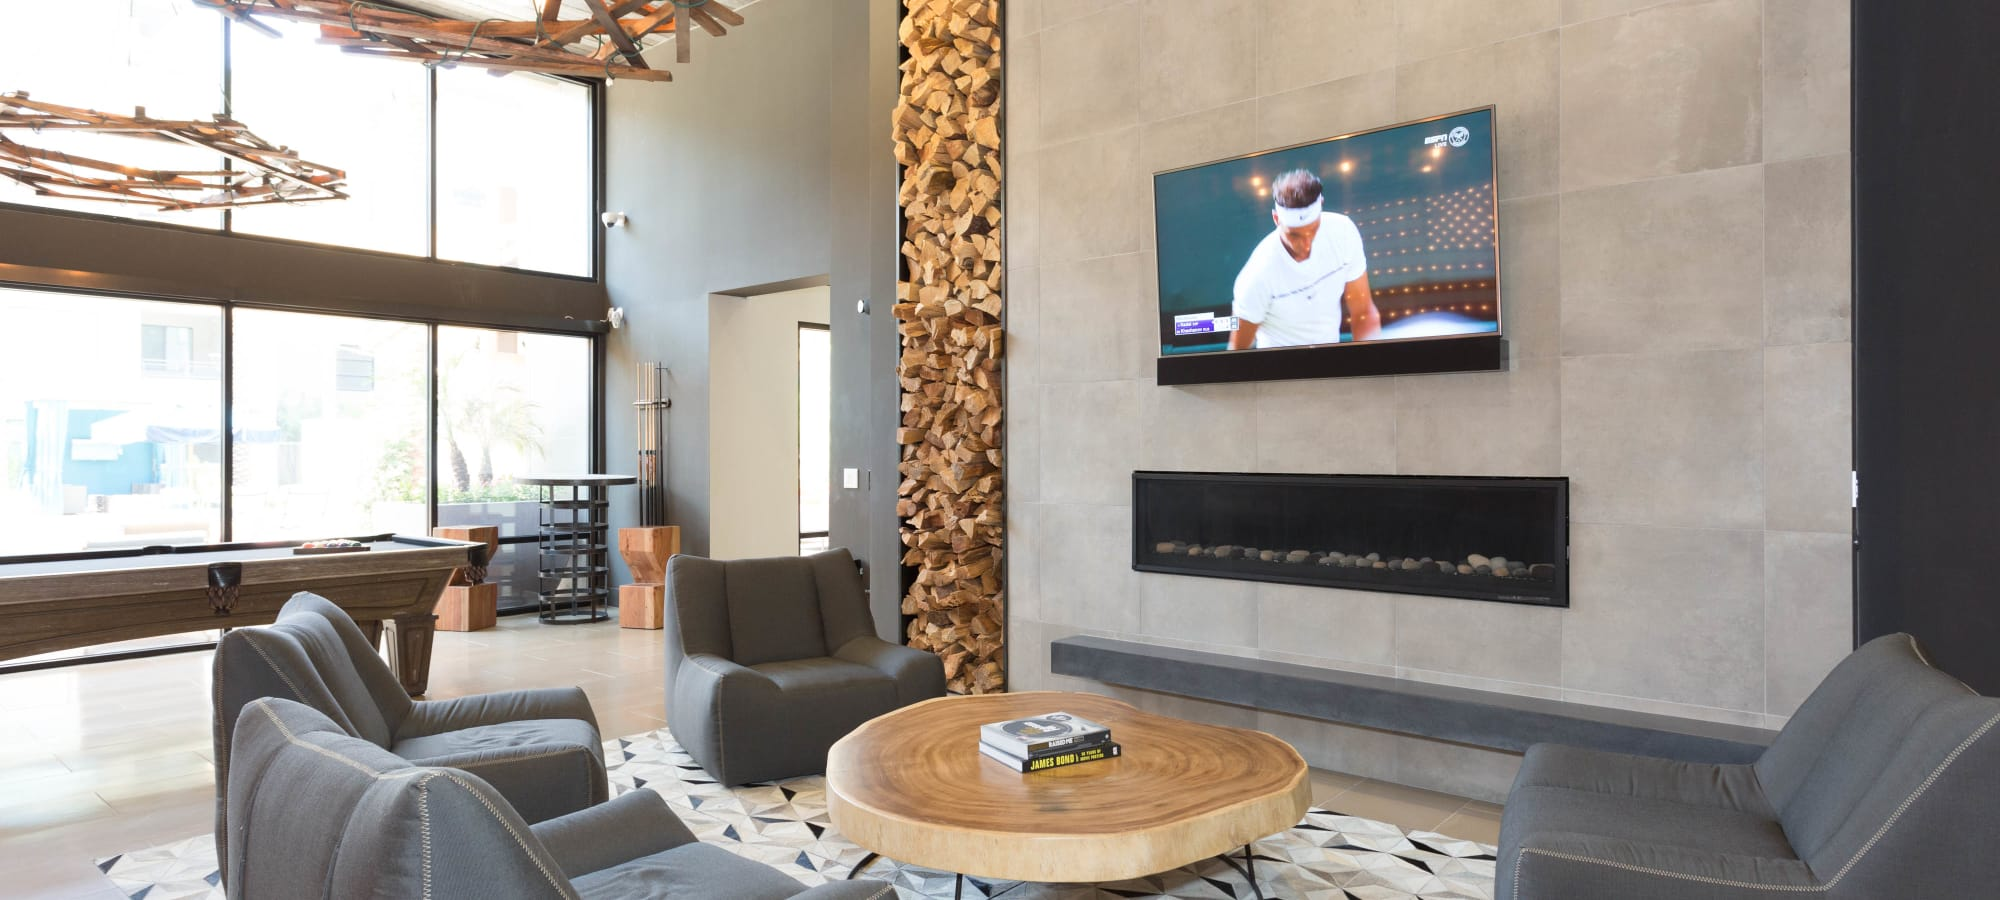 Comfortable seating in front of the fireplace in the lobby at Avant at Fashion Center in Chandler, Arizona